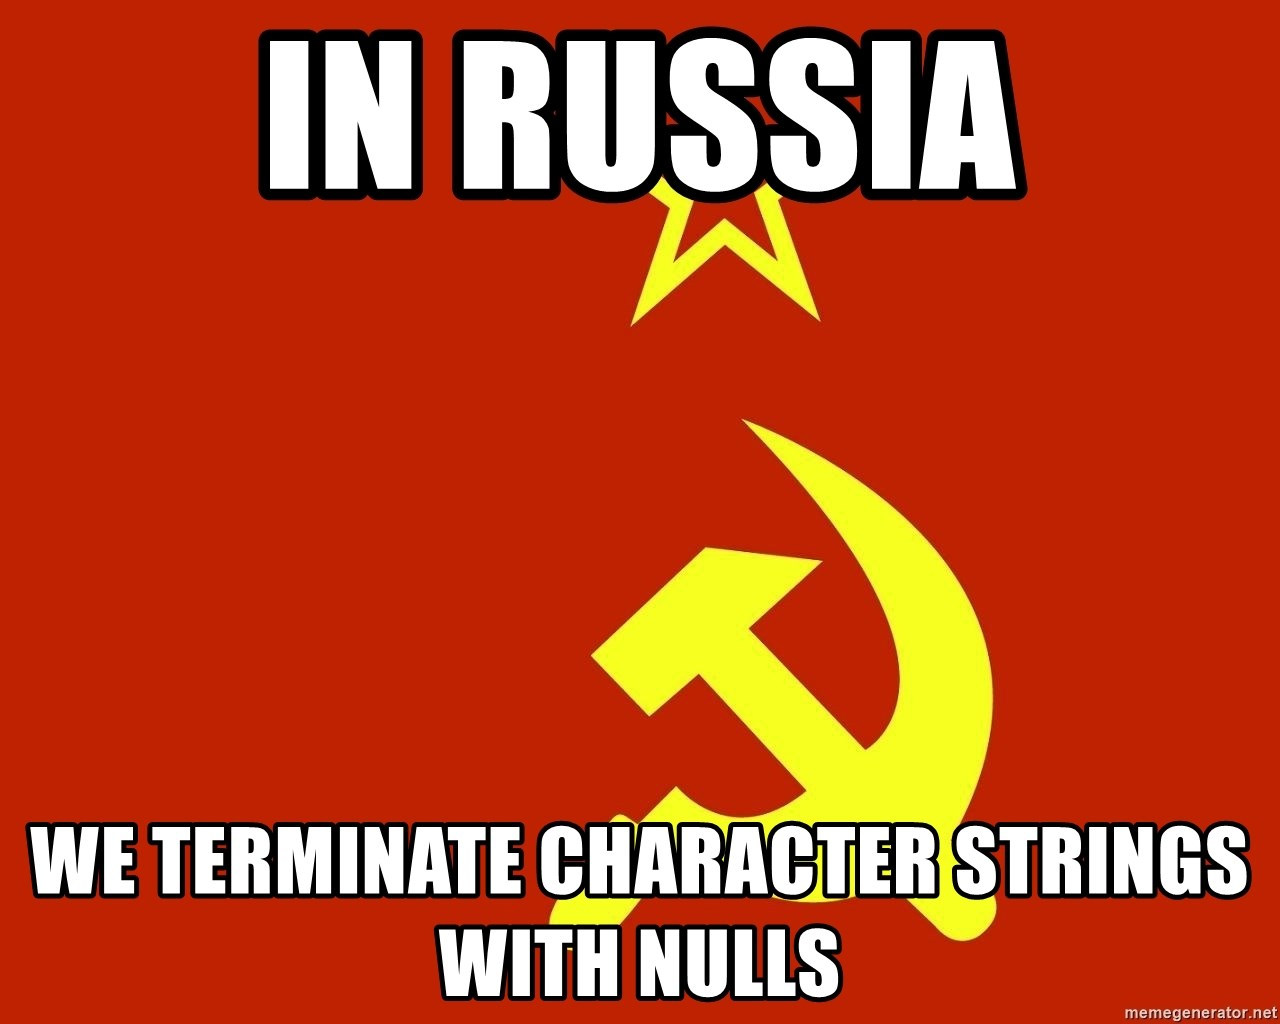 In Soviet Russia - In Russia We terminate character strings with nulls